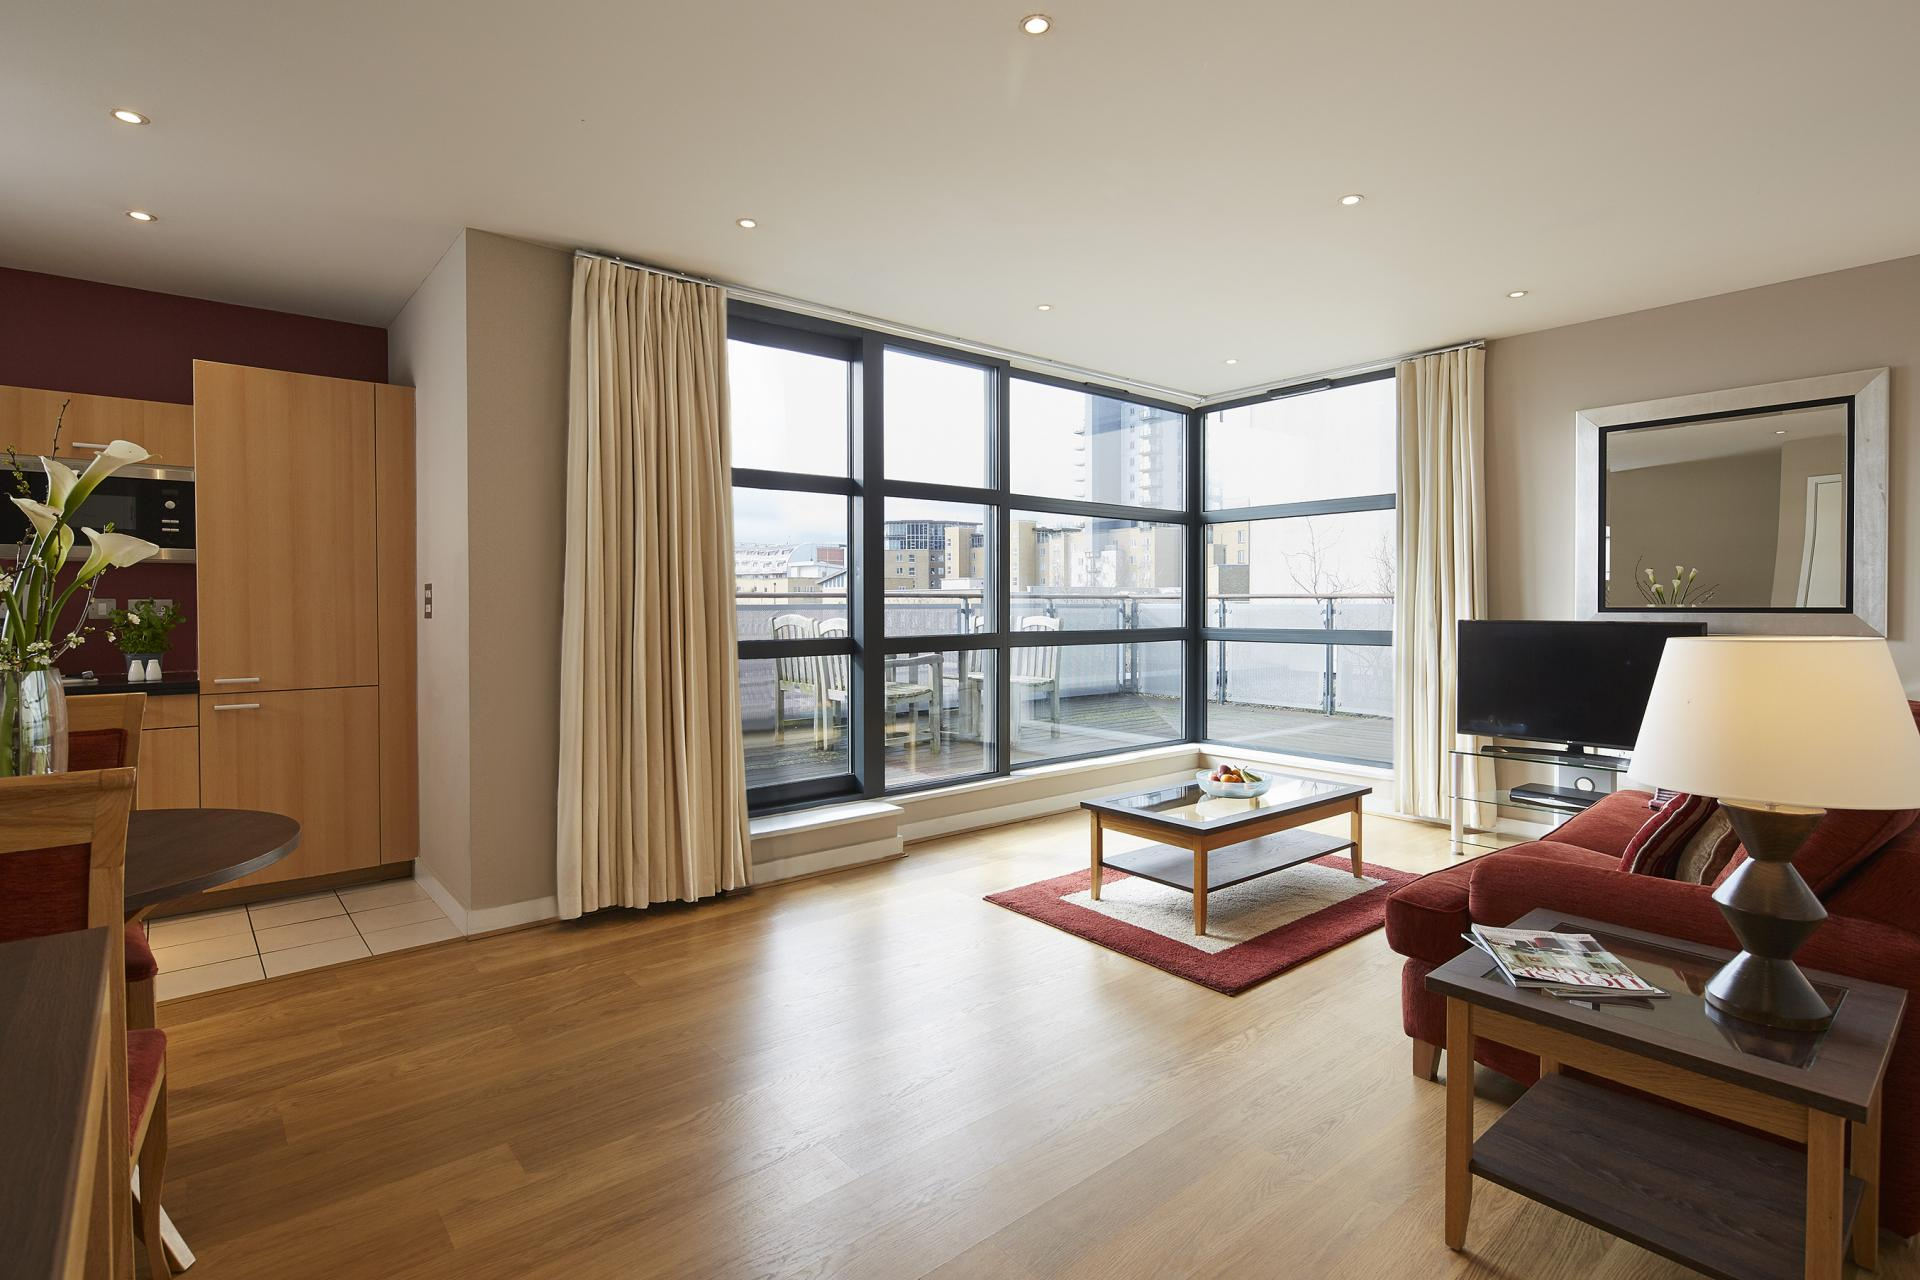 Windows at Marlin Canary Wharf Apartments, Canary Wharf, London - Citybase Apartments